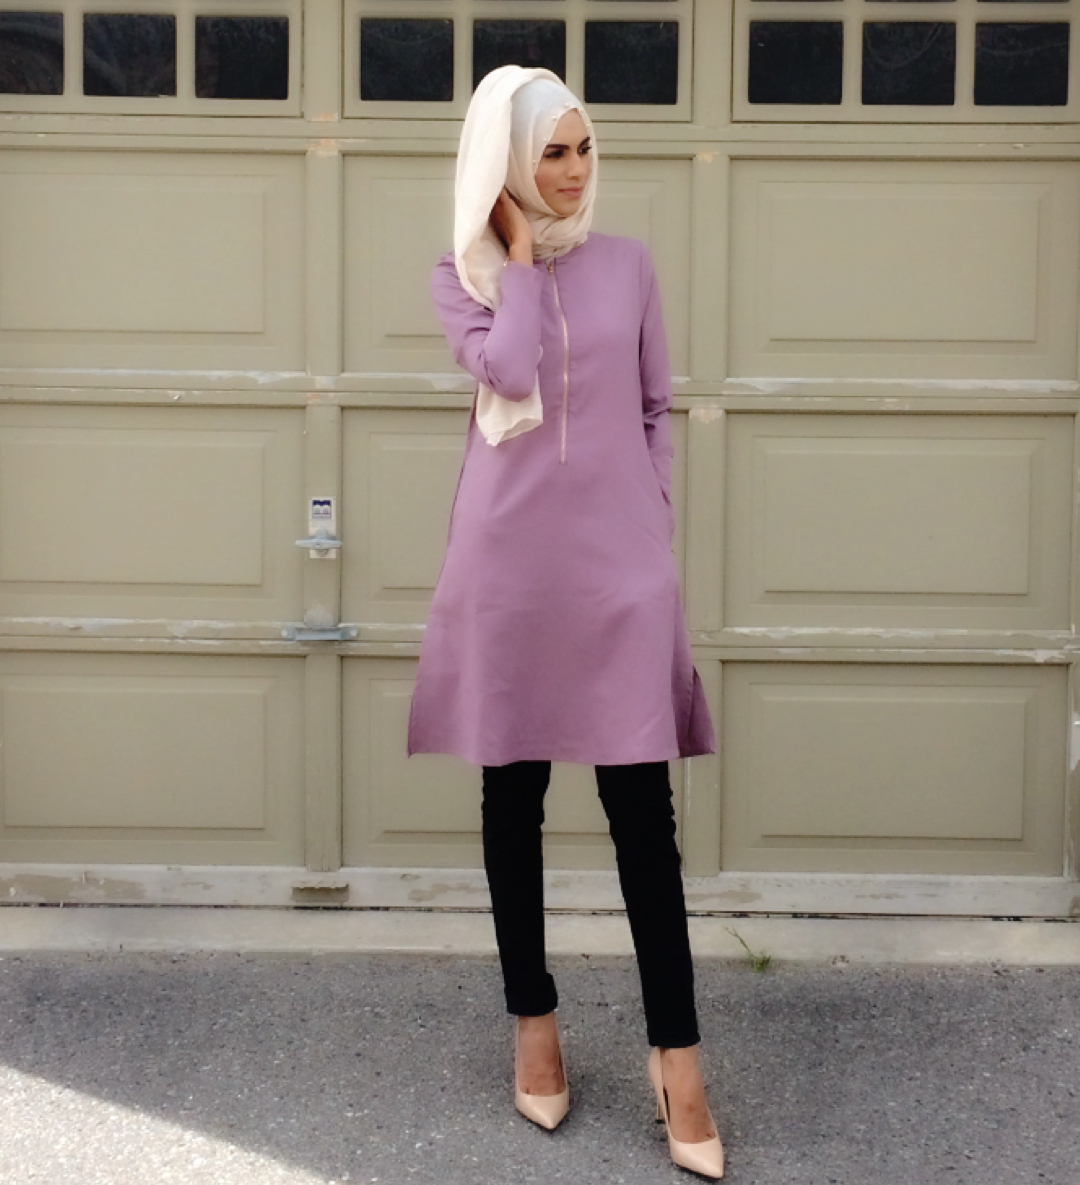 Effortless and comfortably stylish. This  mauve long tunic  ($45) falls just above the knee and looks & feels great with a comfy pair of leggings. A light and breathable viscose hijab in ivory ($15) with pearl trim is a wardrobe staple that can make the simplest ensemble look elegant. Zaheera has selected a pair of nude pumps to finish her look but a cozy pair of flats look great or knee high boots in the fall. Tunic & hijab by Hijabi Mama available at The Date Palm